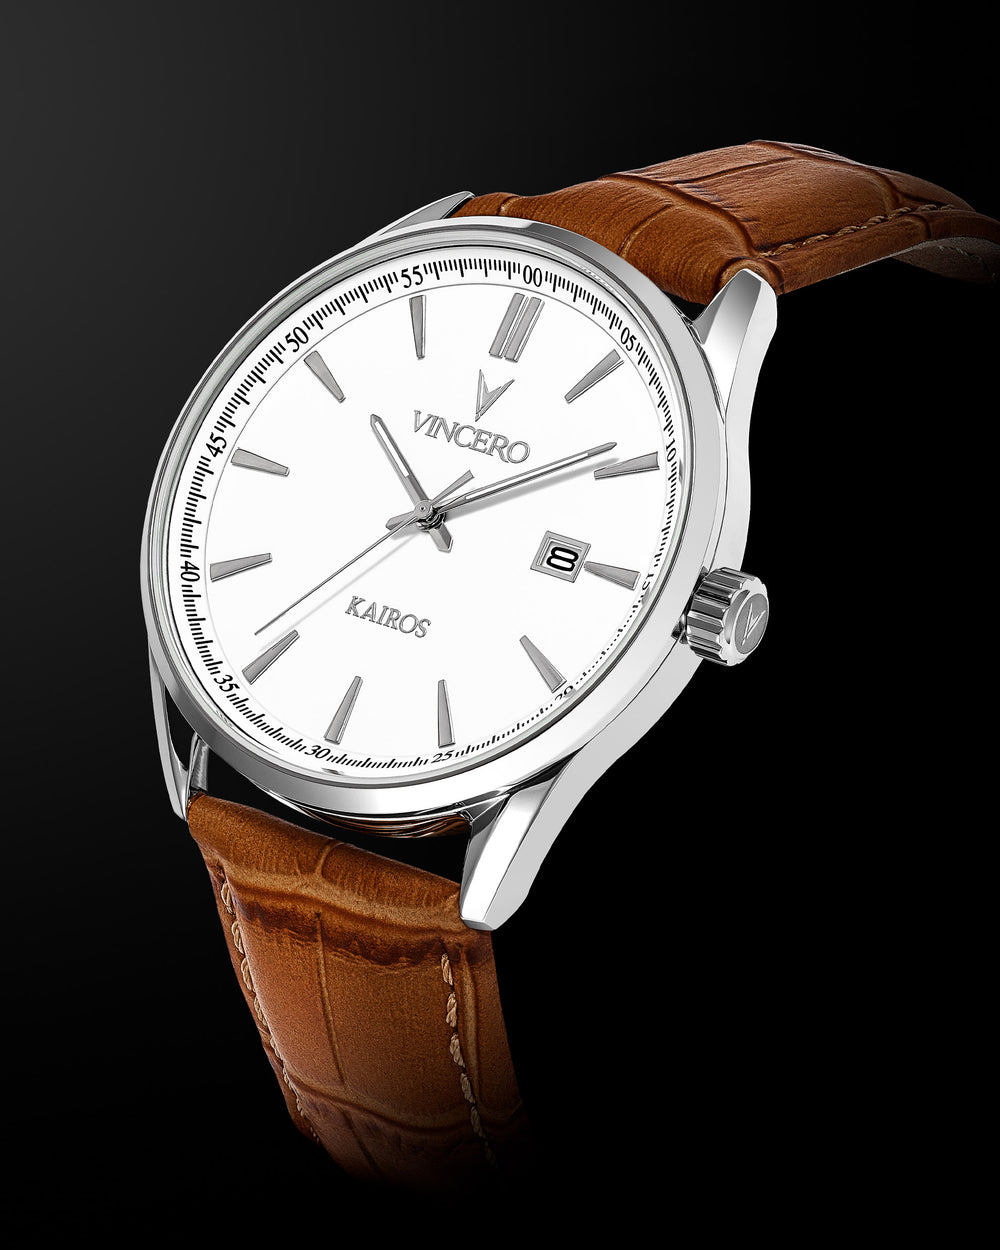 Kairos Tan Croc Italian Leather Strap White Watch Face Silver Case Clasp Silver Accents